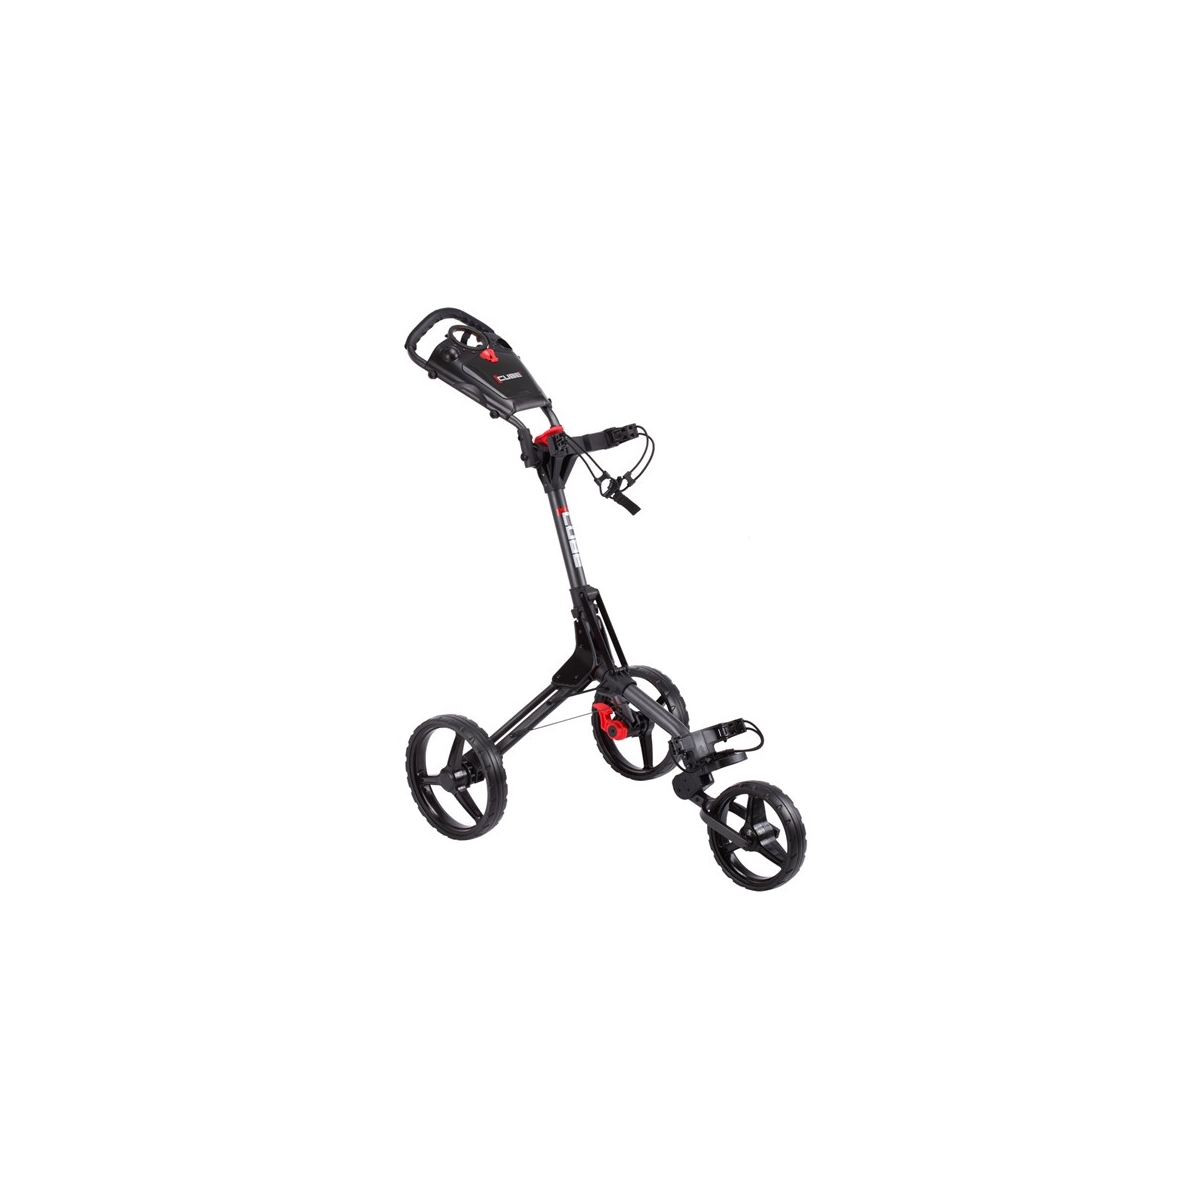 CUBE Carts Golf Trolley 3 Rad Push Leicht - Kompakt - Komfortabel Farbe: Black/Black by Cube